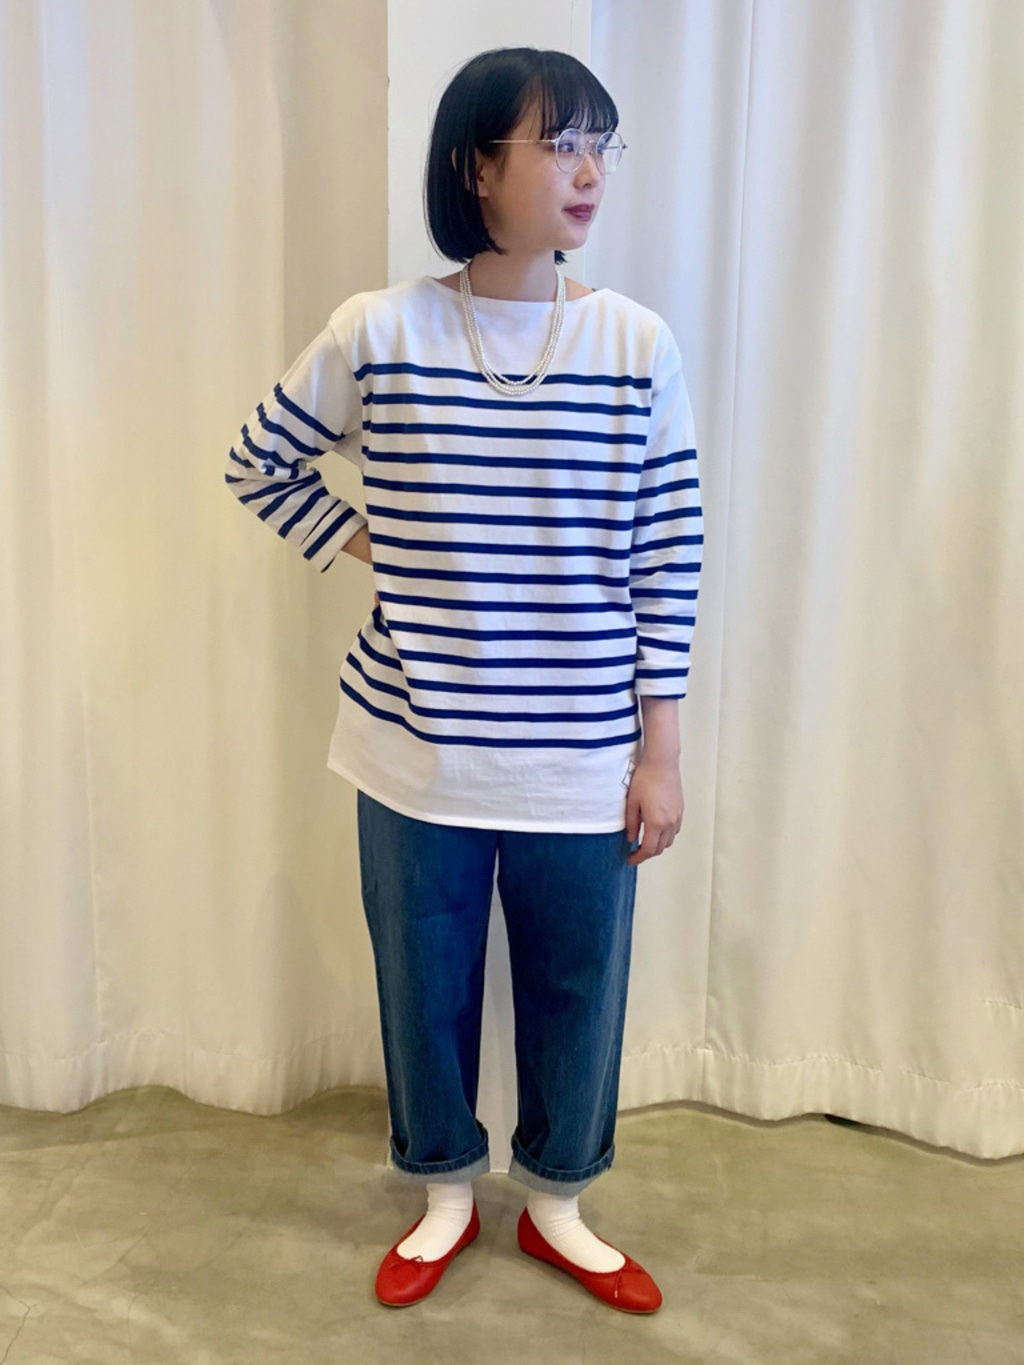 Dot and Stripes CHILD WOMAN ラフォーレ原宿 身長:157cm 2021.02.08